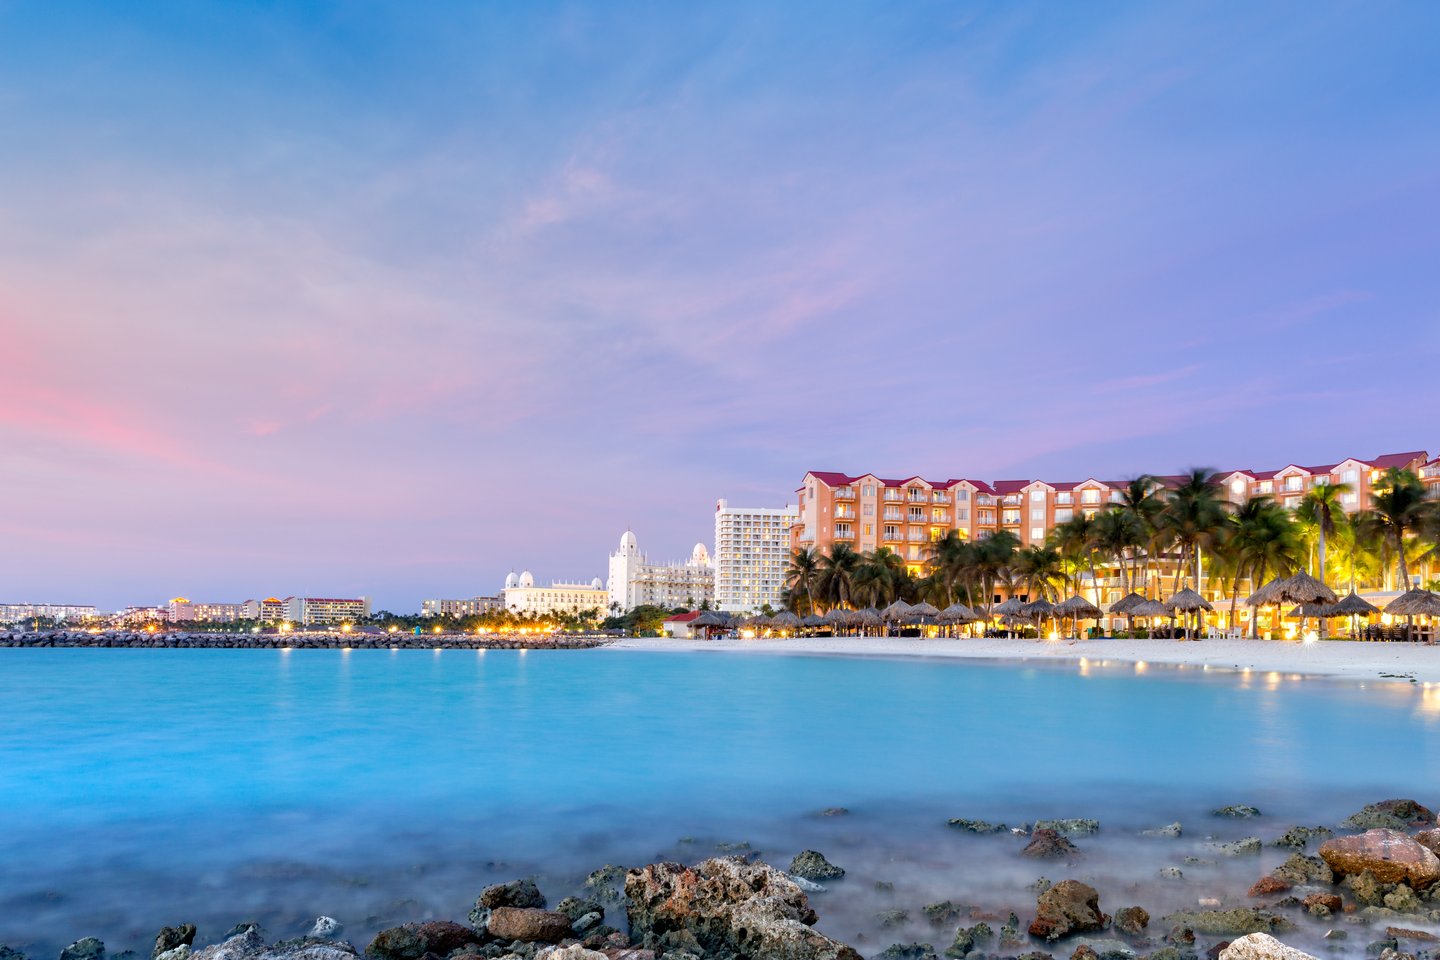 a view of the hotels on the shore of Oranjestad, Aruba